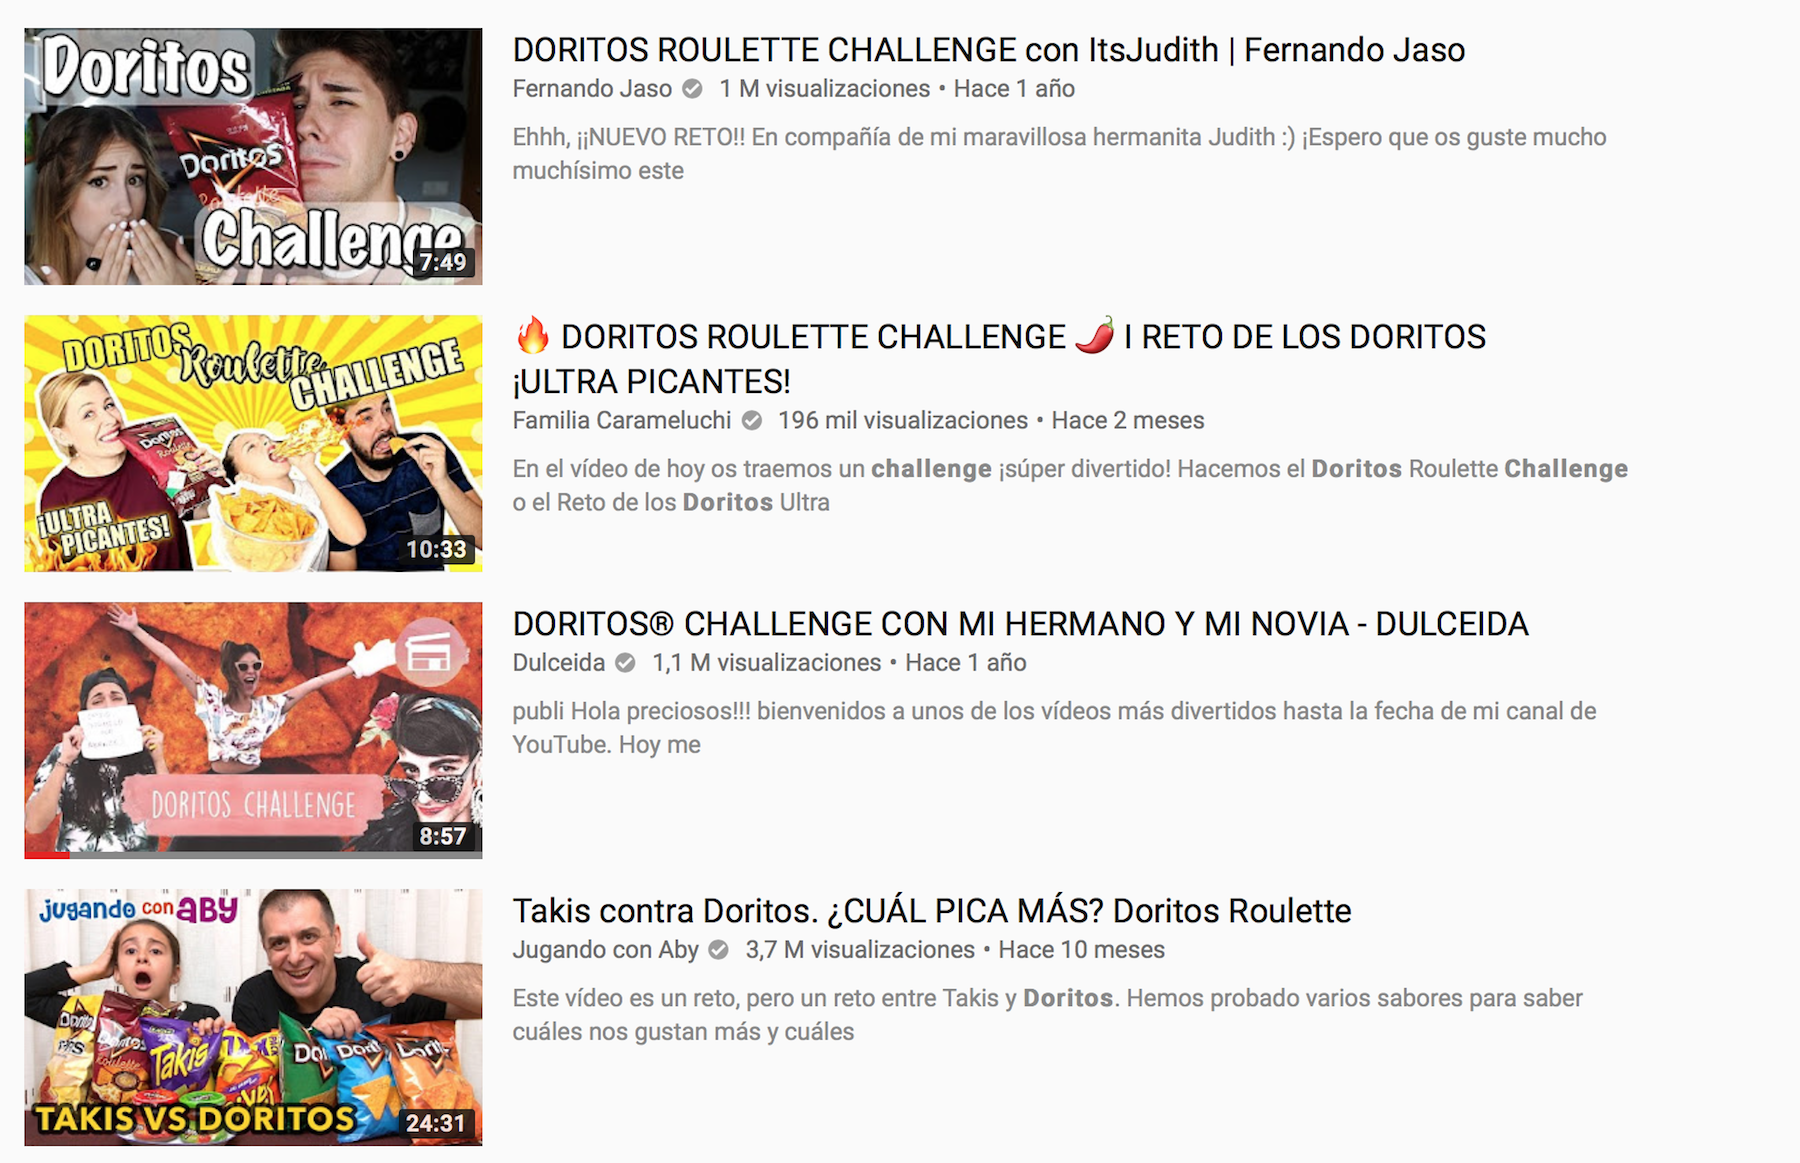 campaña doritos youtube